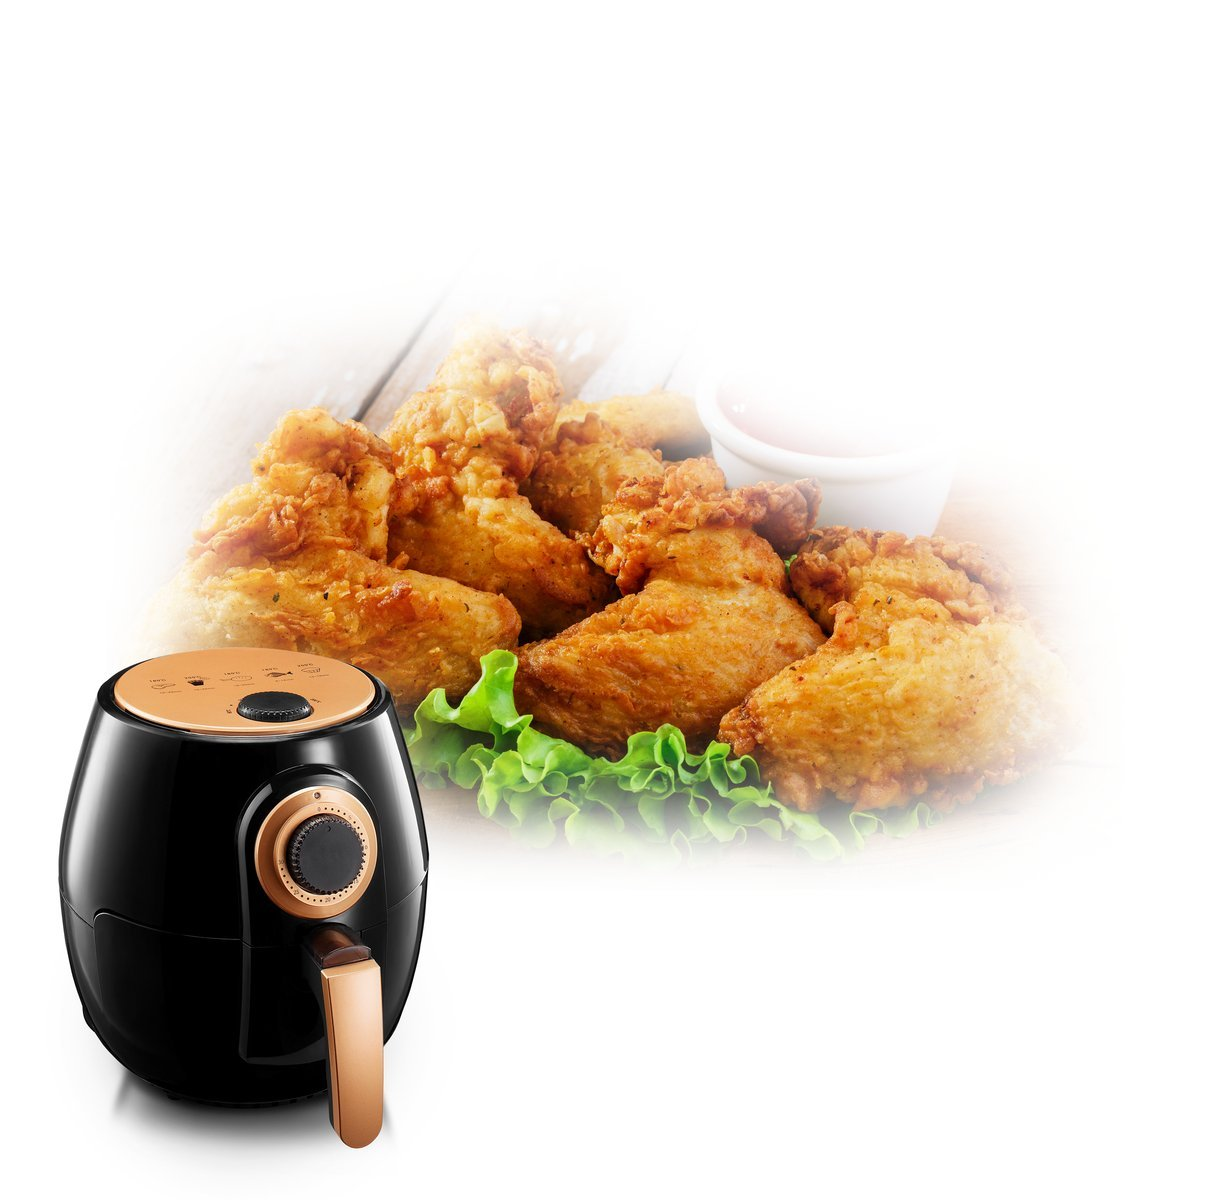 Gotham Steel Air Fryer XL 3.8 Liter with Rapid Air Technology for Oil Free Healthy Cooking Adjustable Temperature Control with Auto Shutoff As Seen on TV Dishwasher Safe with Nonstick Copper Coating